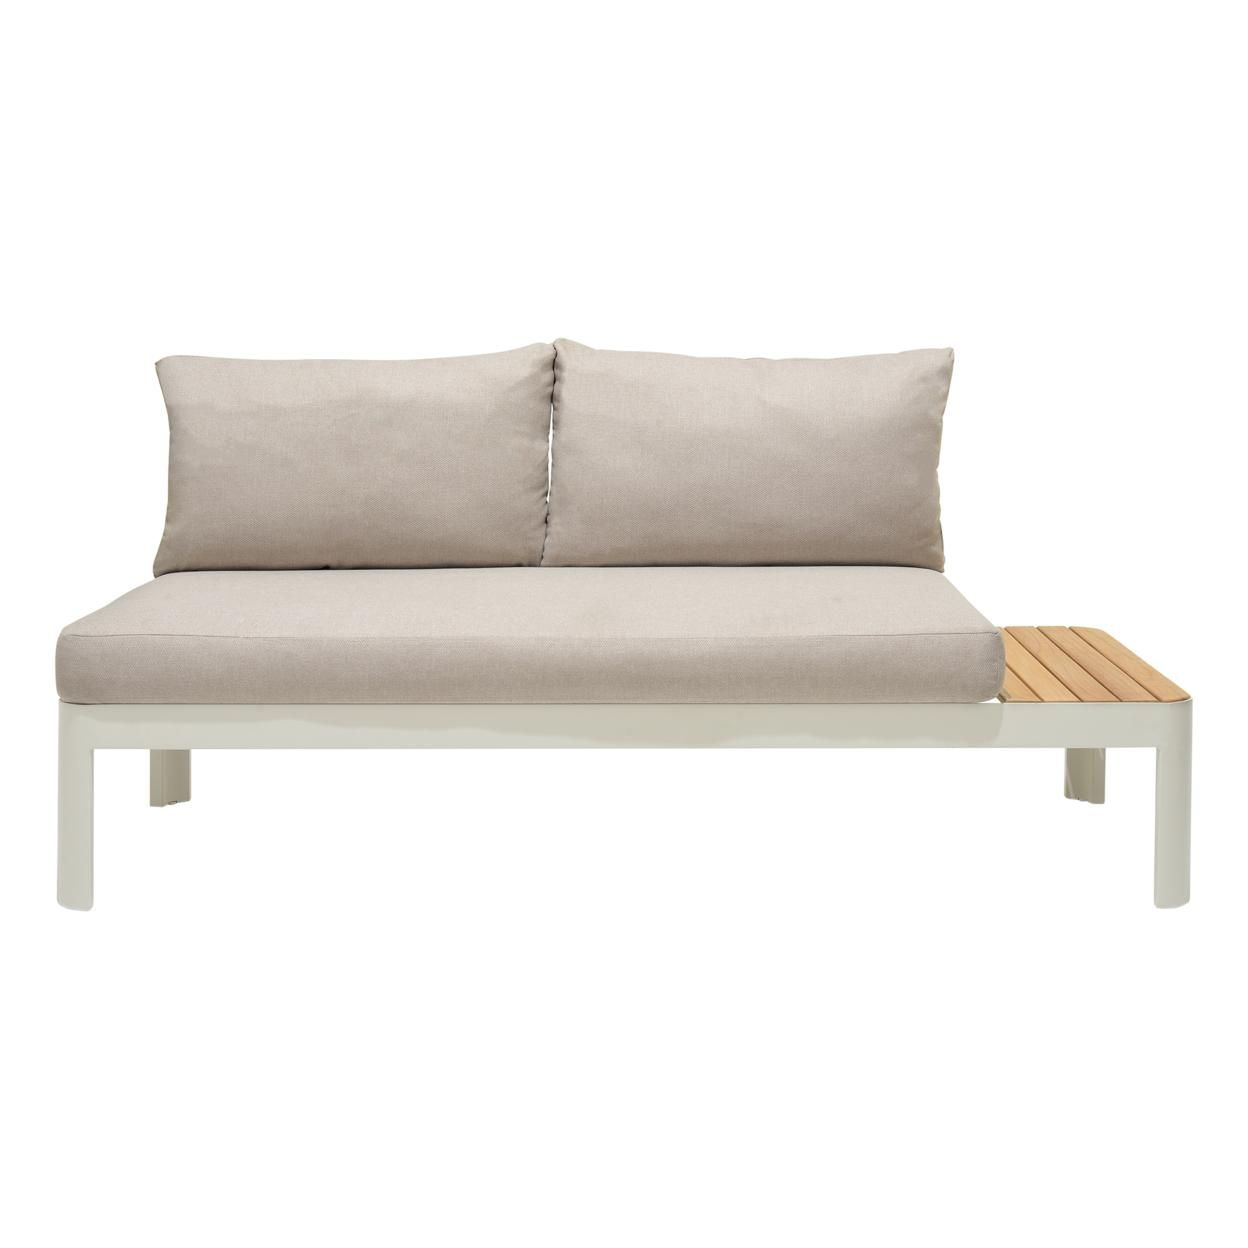 Saltoro Sherpi Outdoor Sofa with Slatted Snack Tray and Removable Cushions, Light Gray